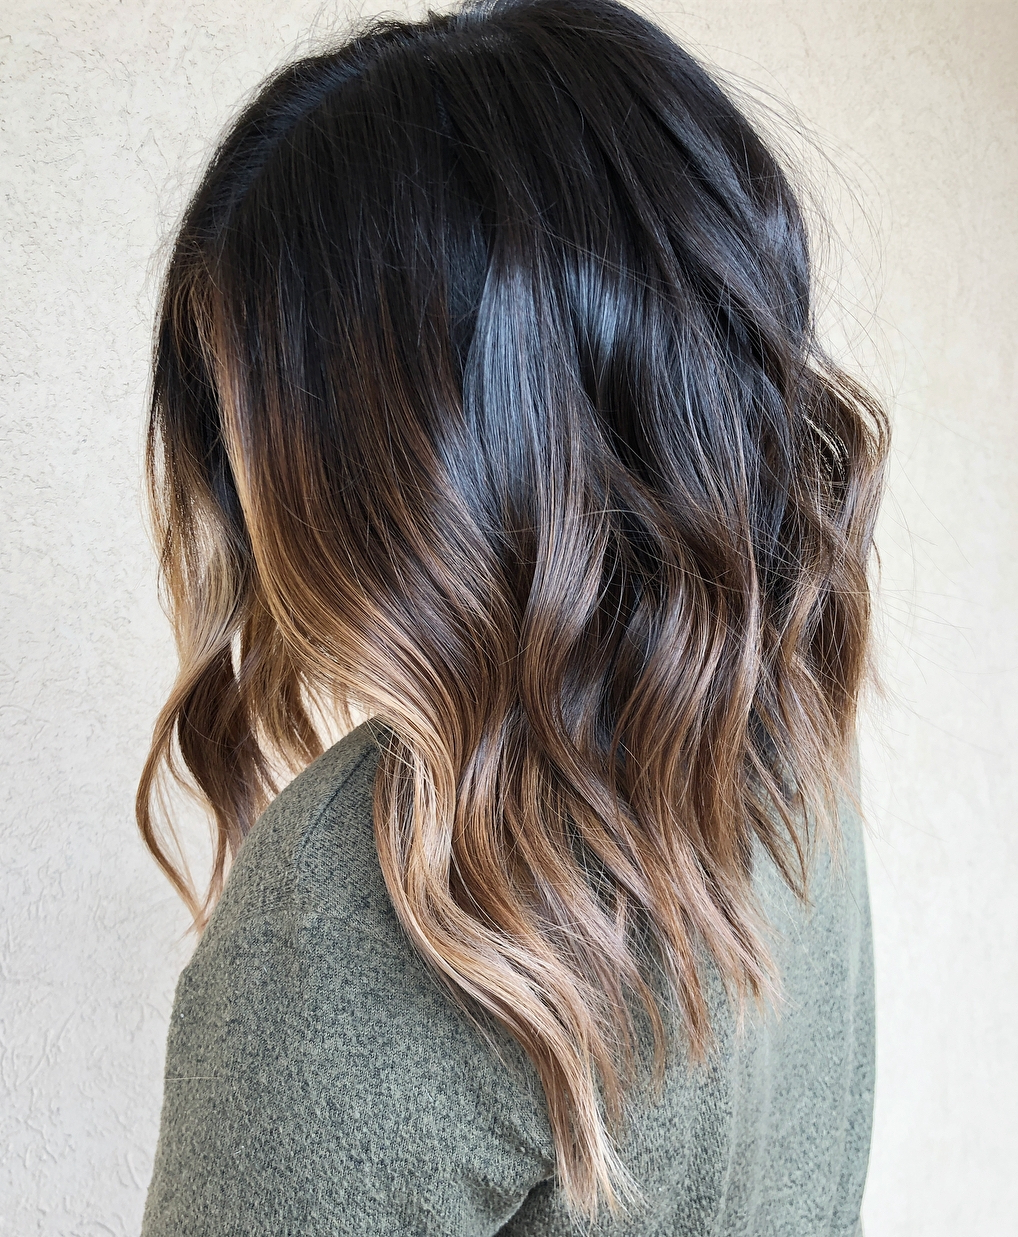 20 Best Face Framing Highlights For Every Base Color And With Regard To Most Recent Wavy Lob Hairstyles With Face Framing Highlights (View 4 of 20)